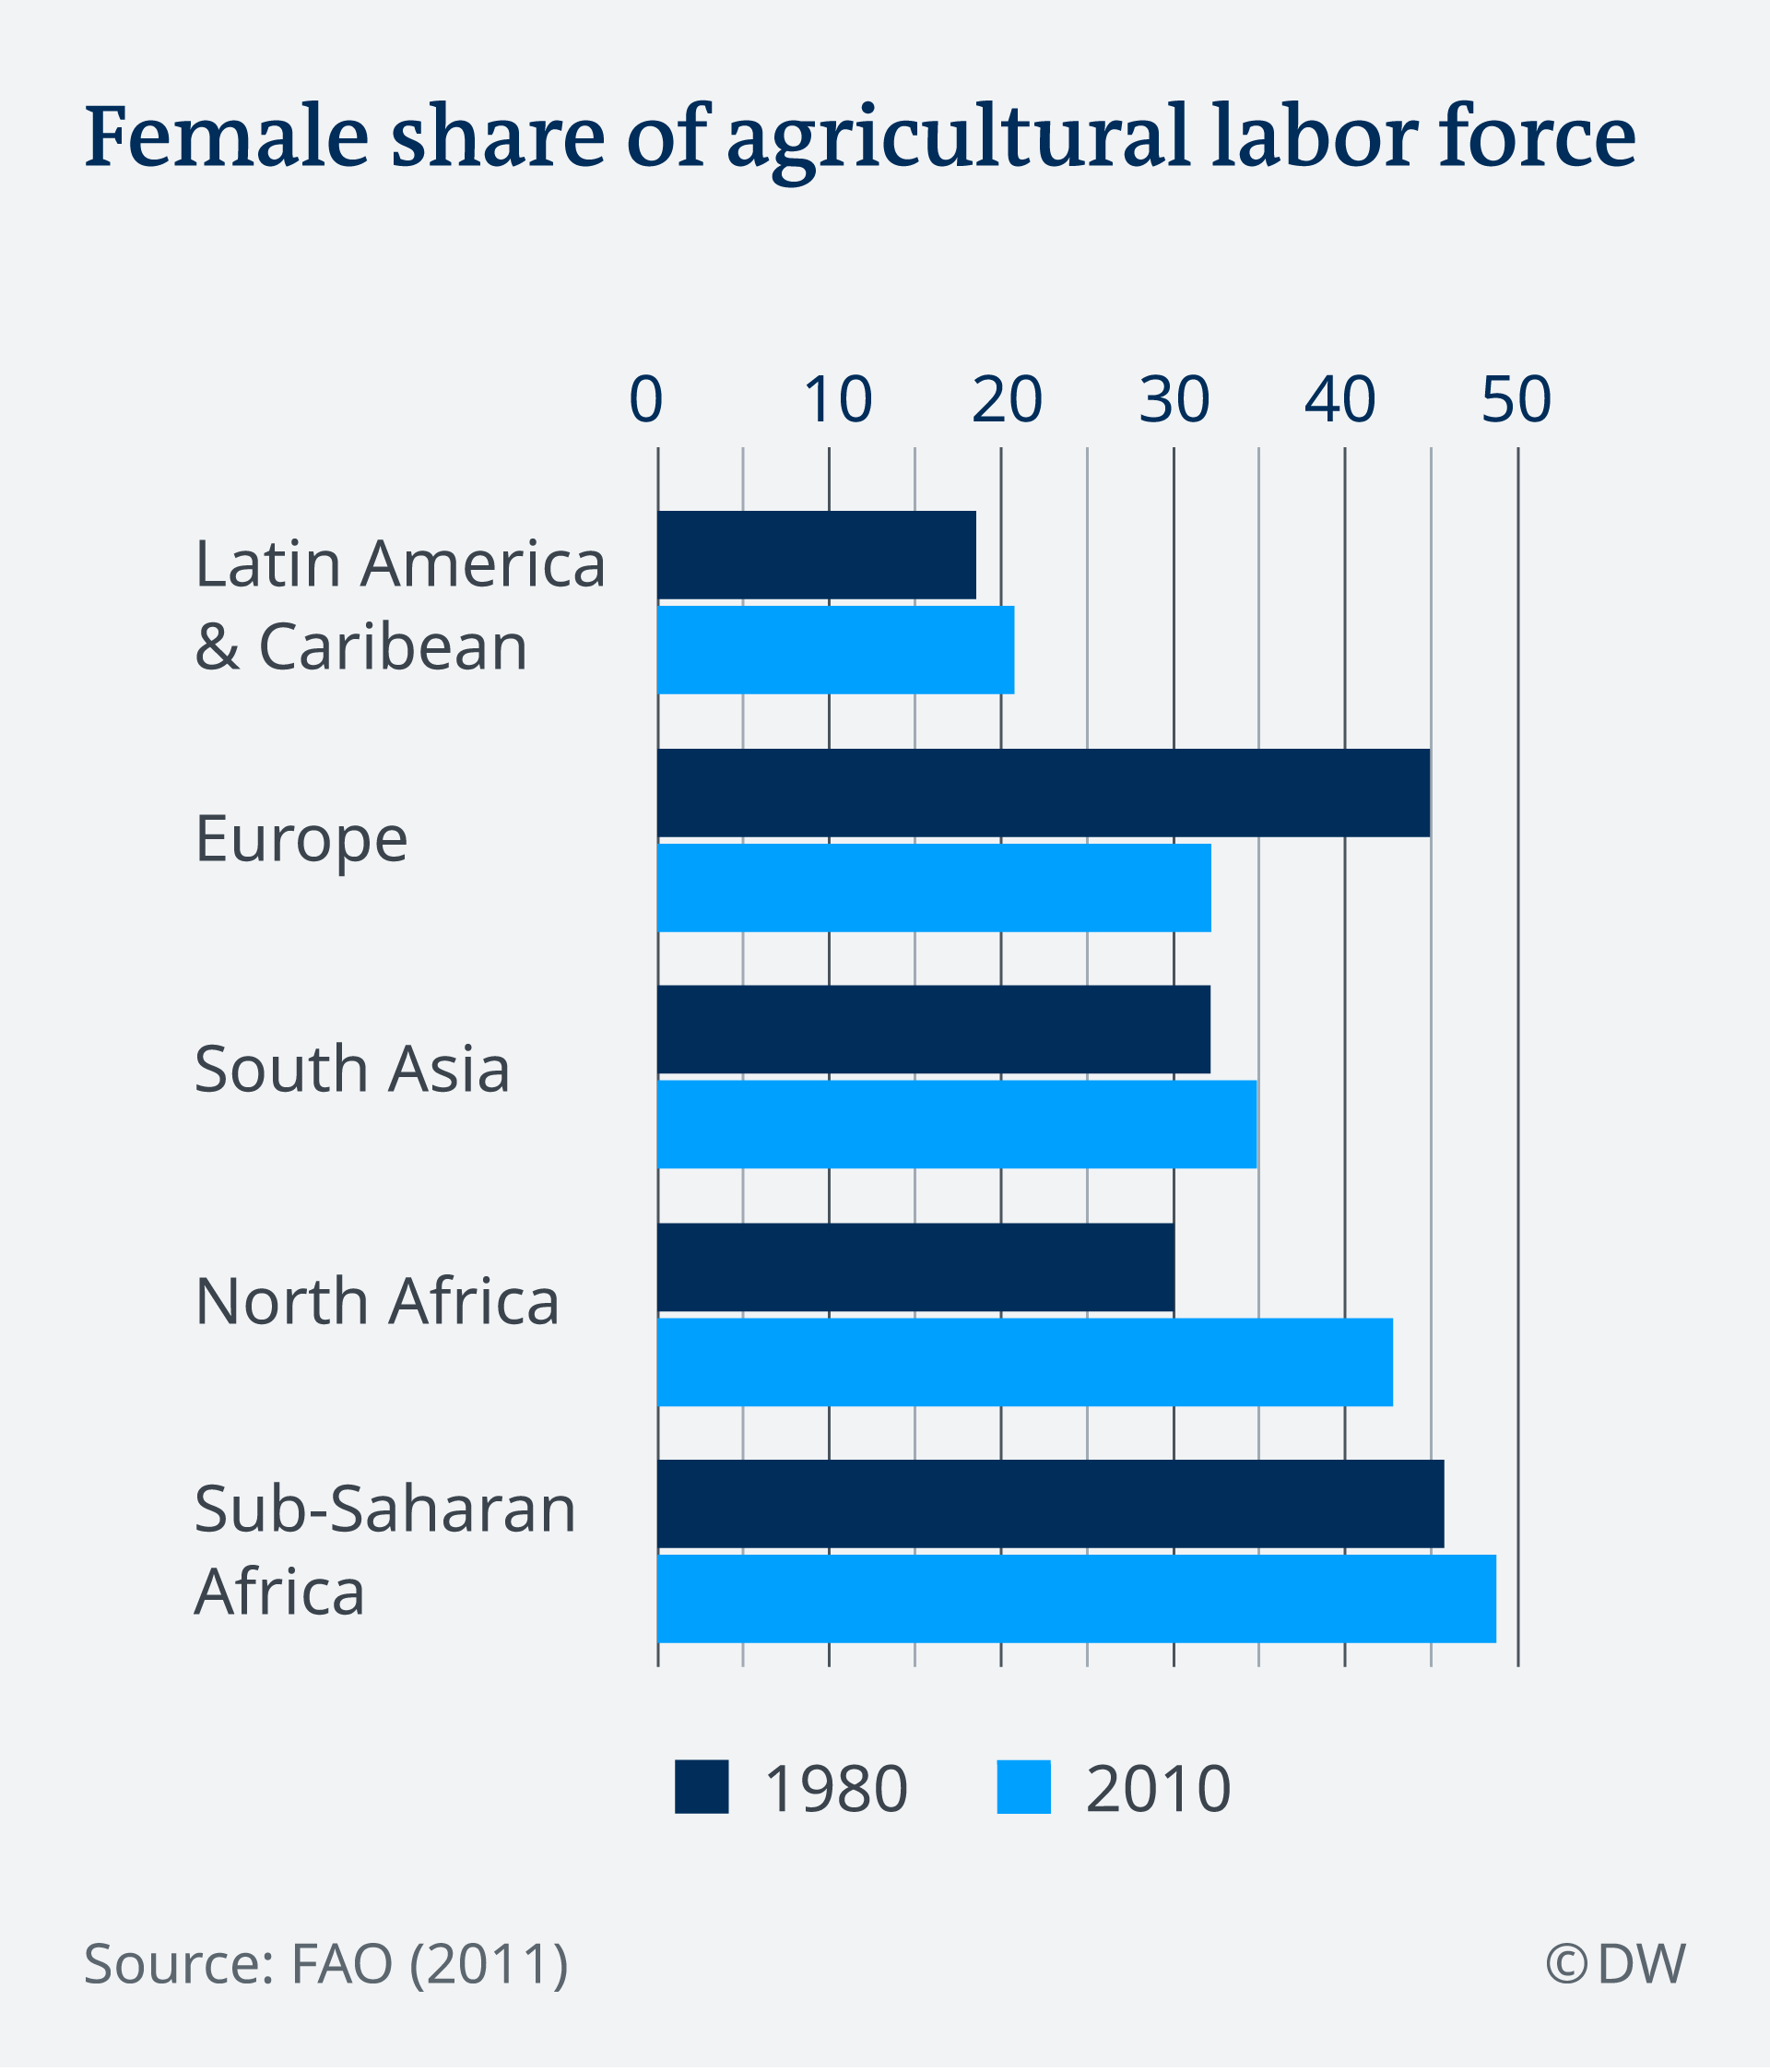 Graphic showing female share of agricultural labor force